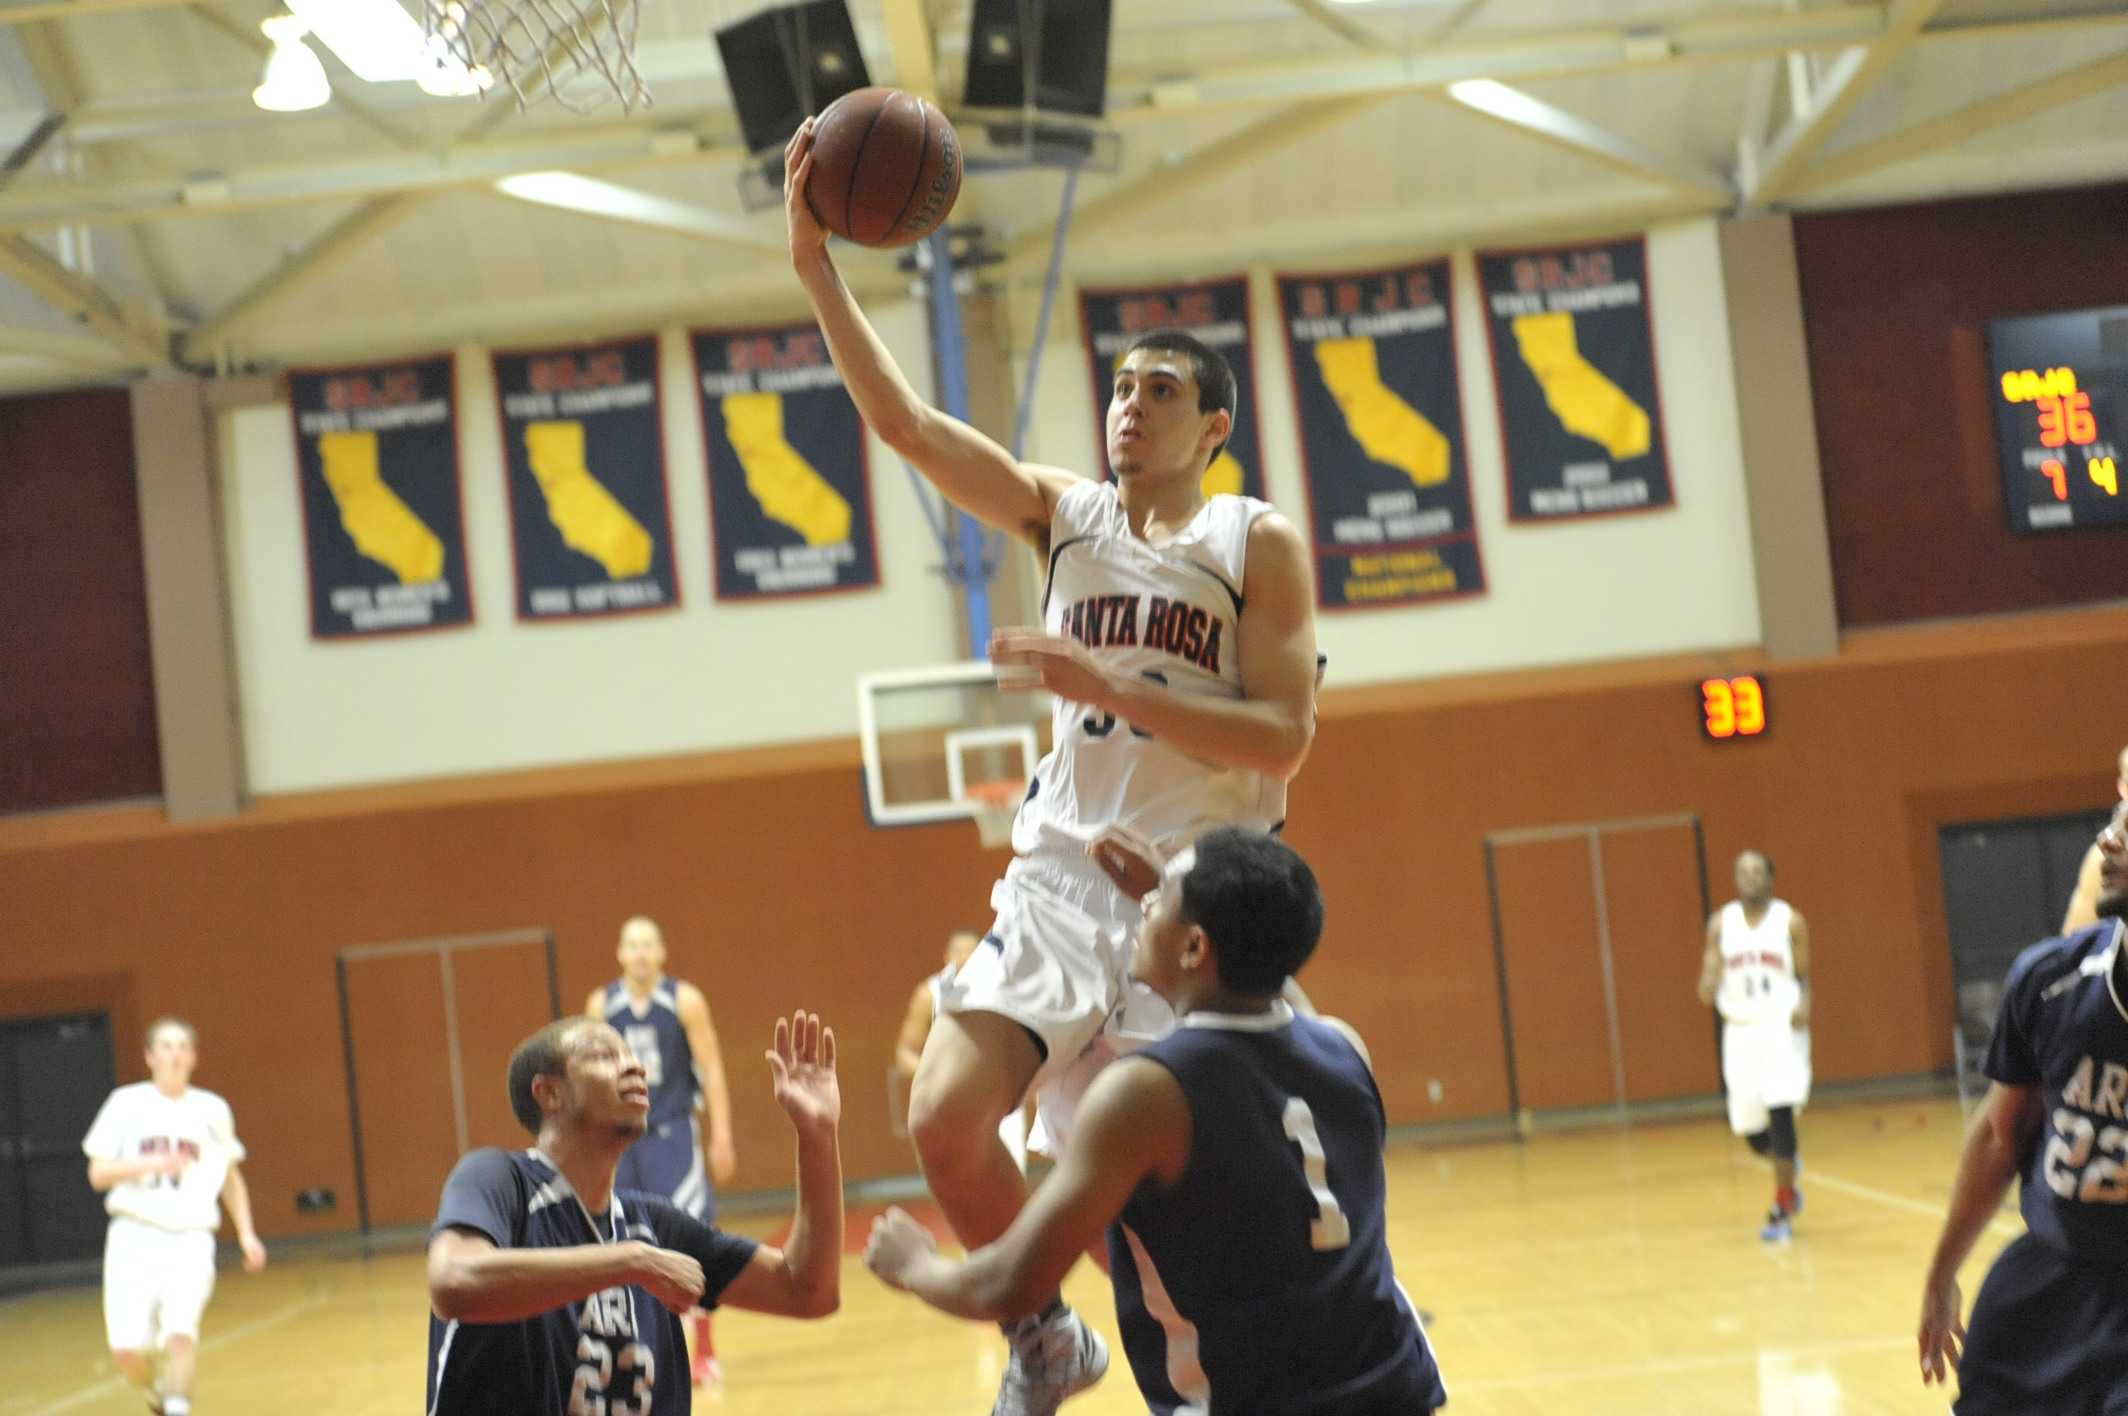 Men's basketball player Brian Johnson finishes a layup against American River College.